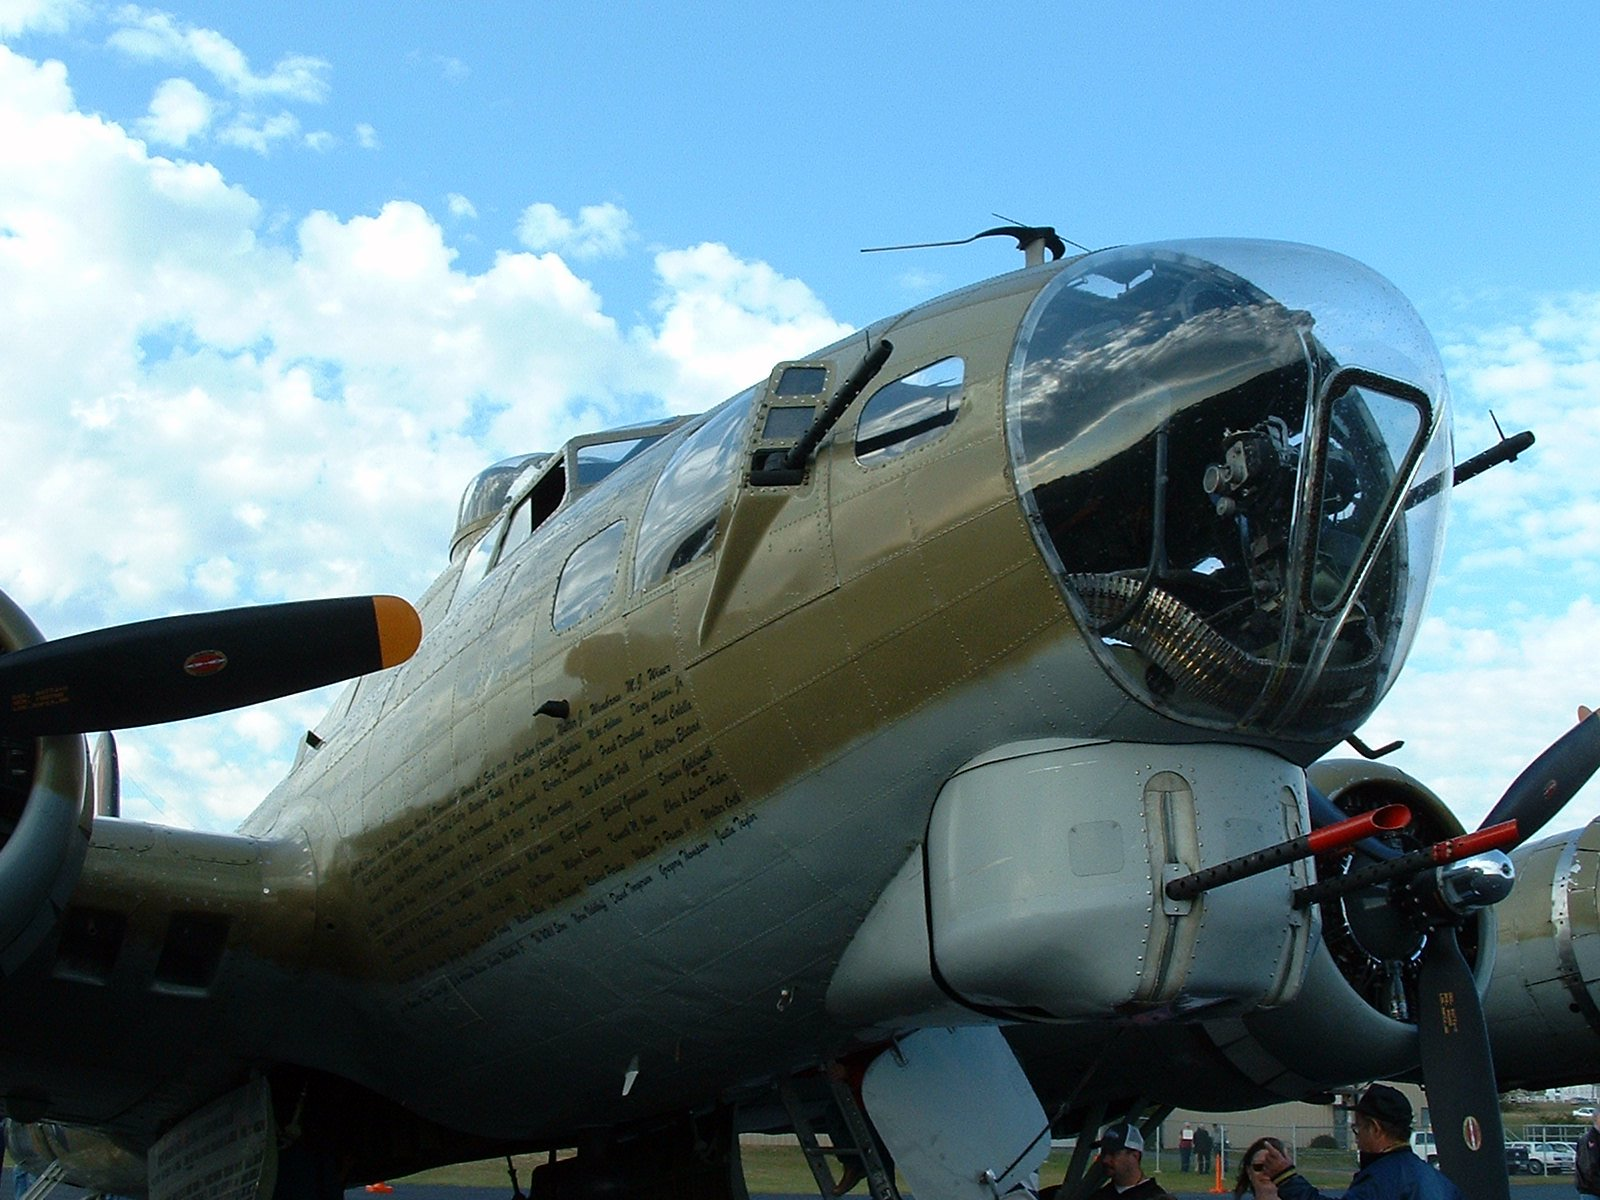 The nose of a B-17 bomber